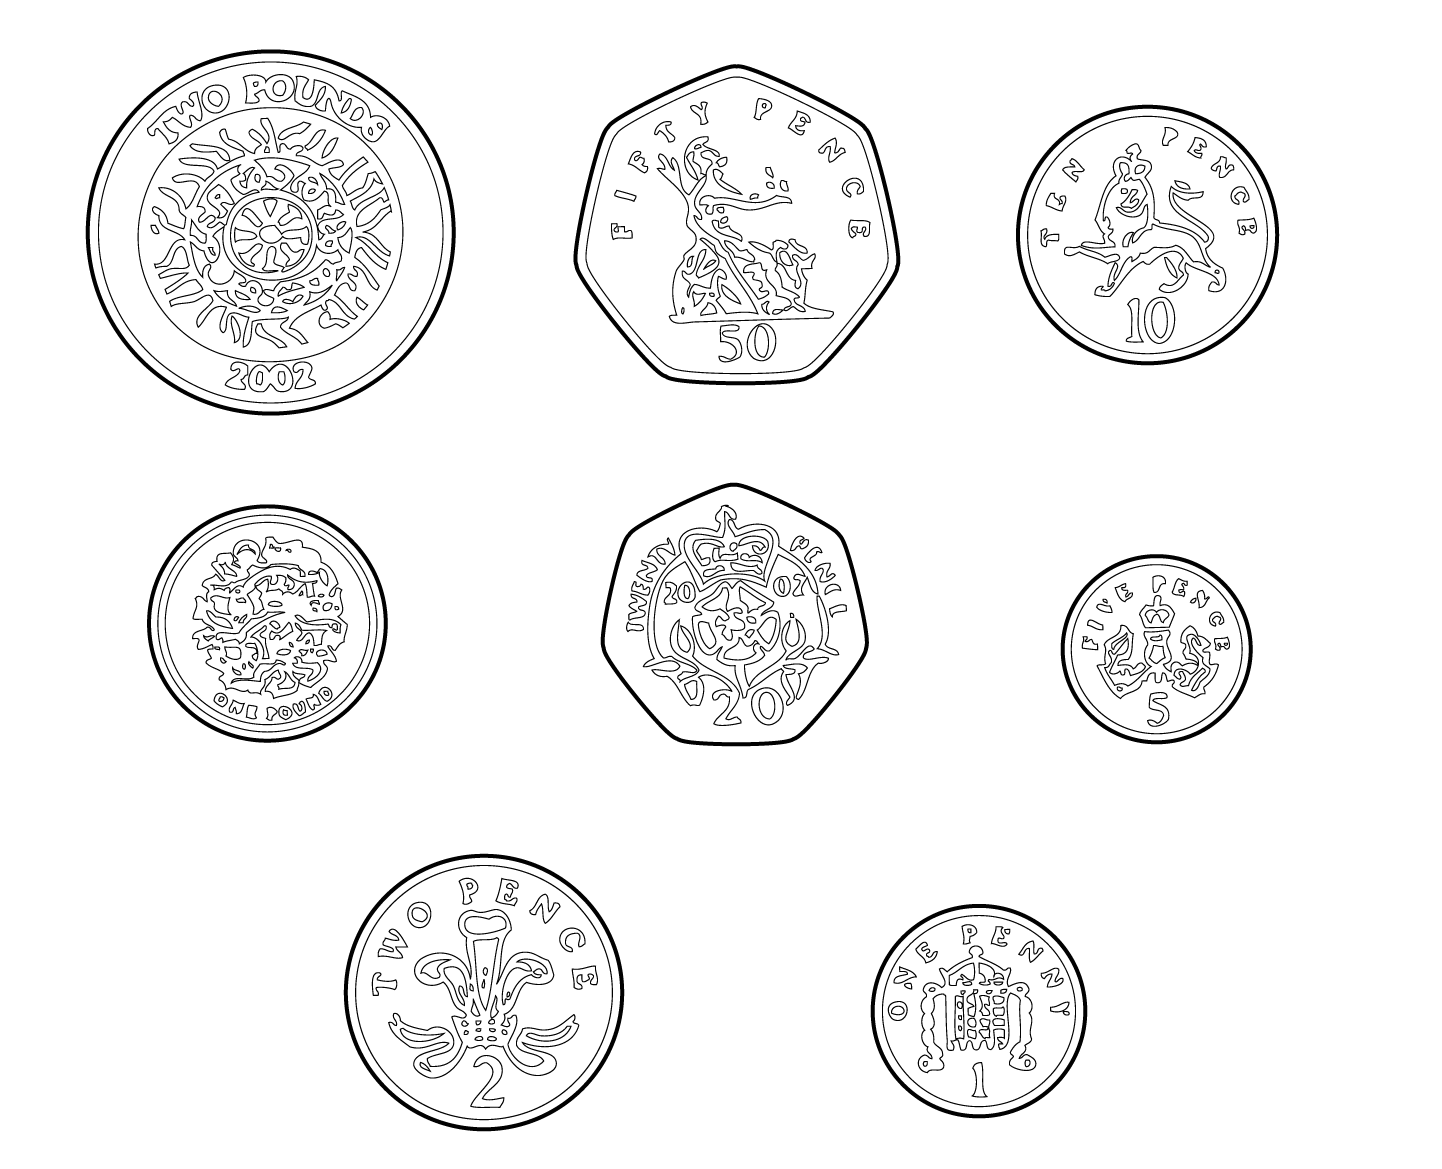 Penny Clipart Coin British Penny Coin British Transparent